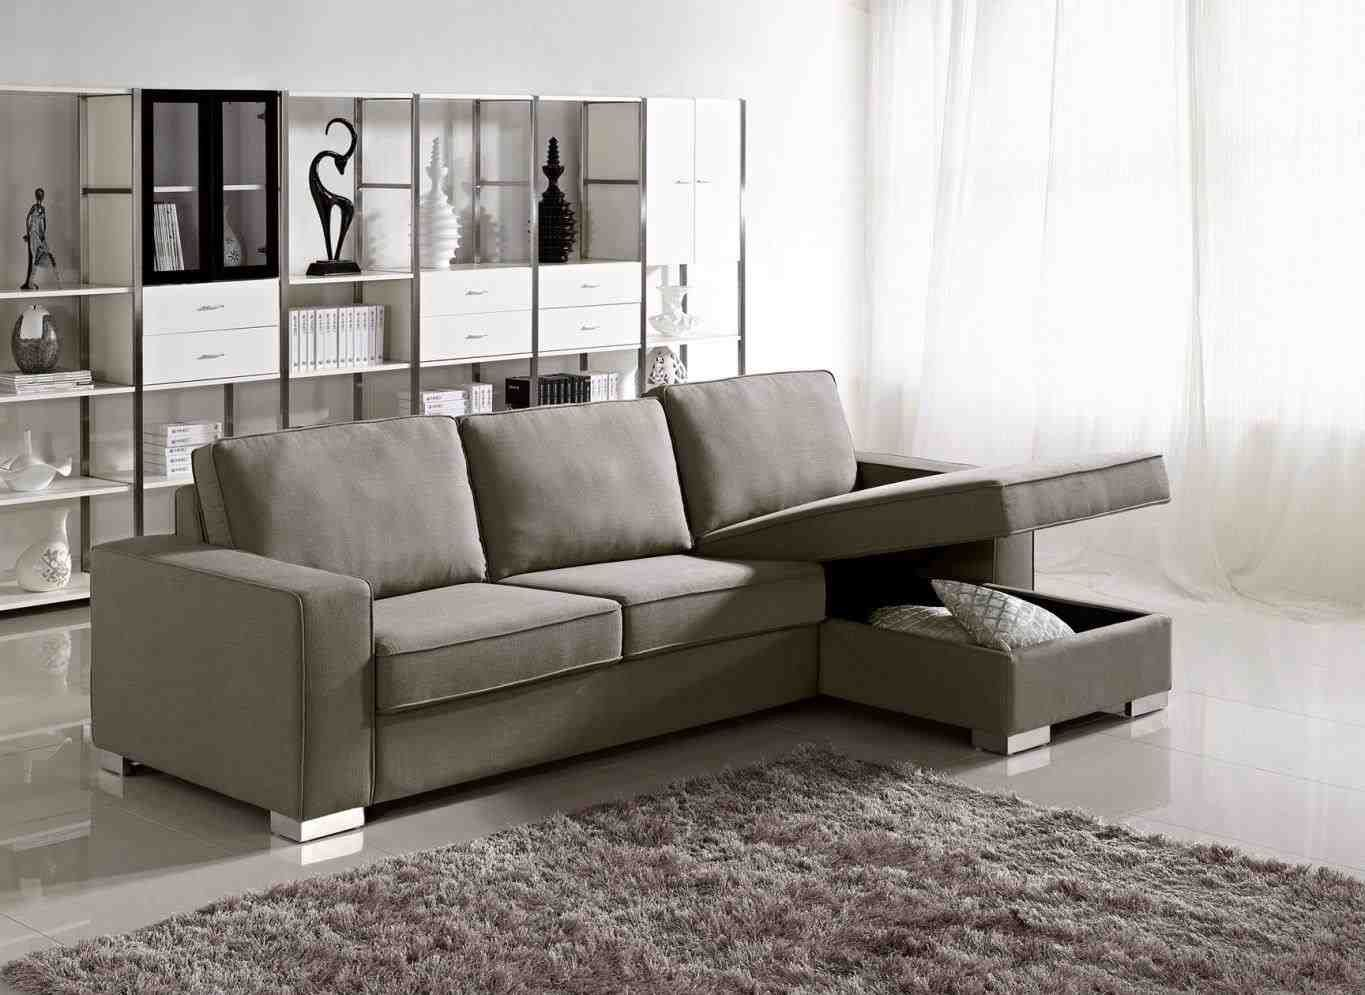 Genuine Leather Sectional Canada Cheap Sectionals Canada Affordable Sectional Couches Full Size